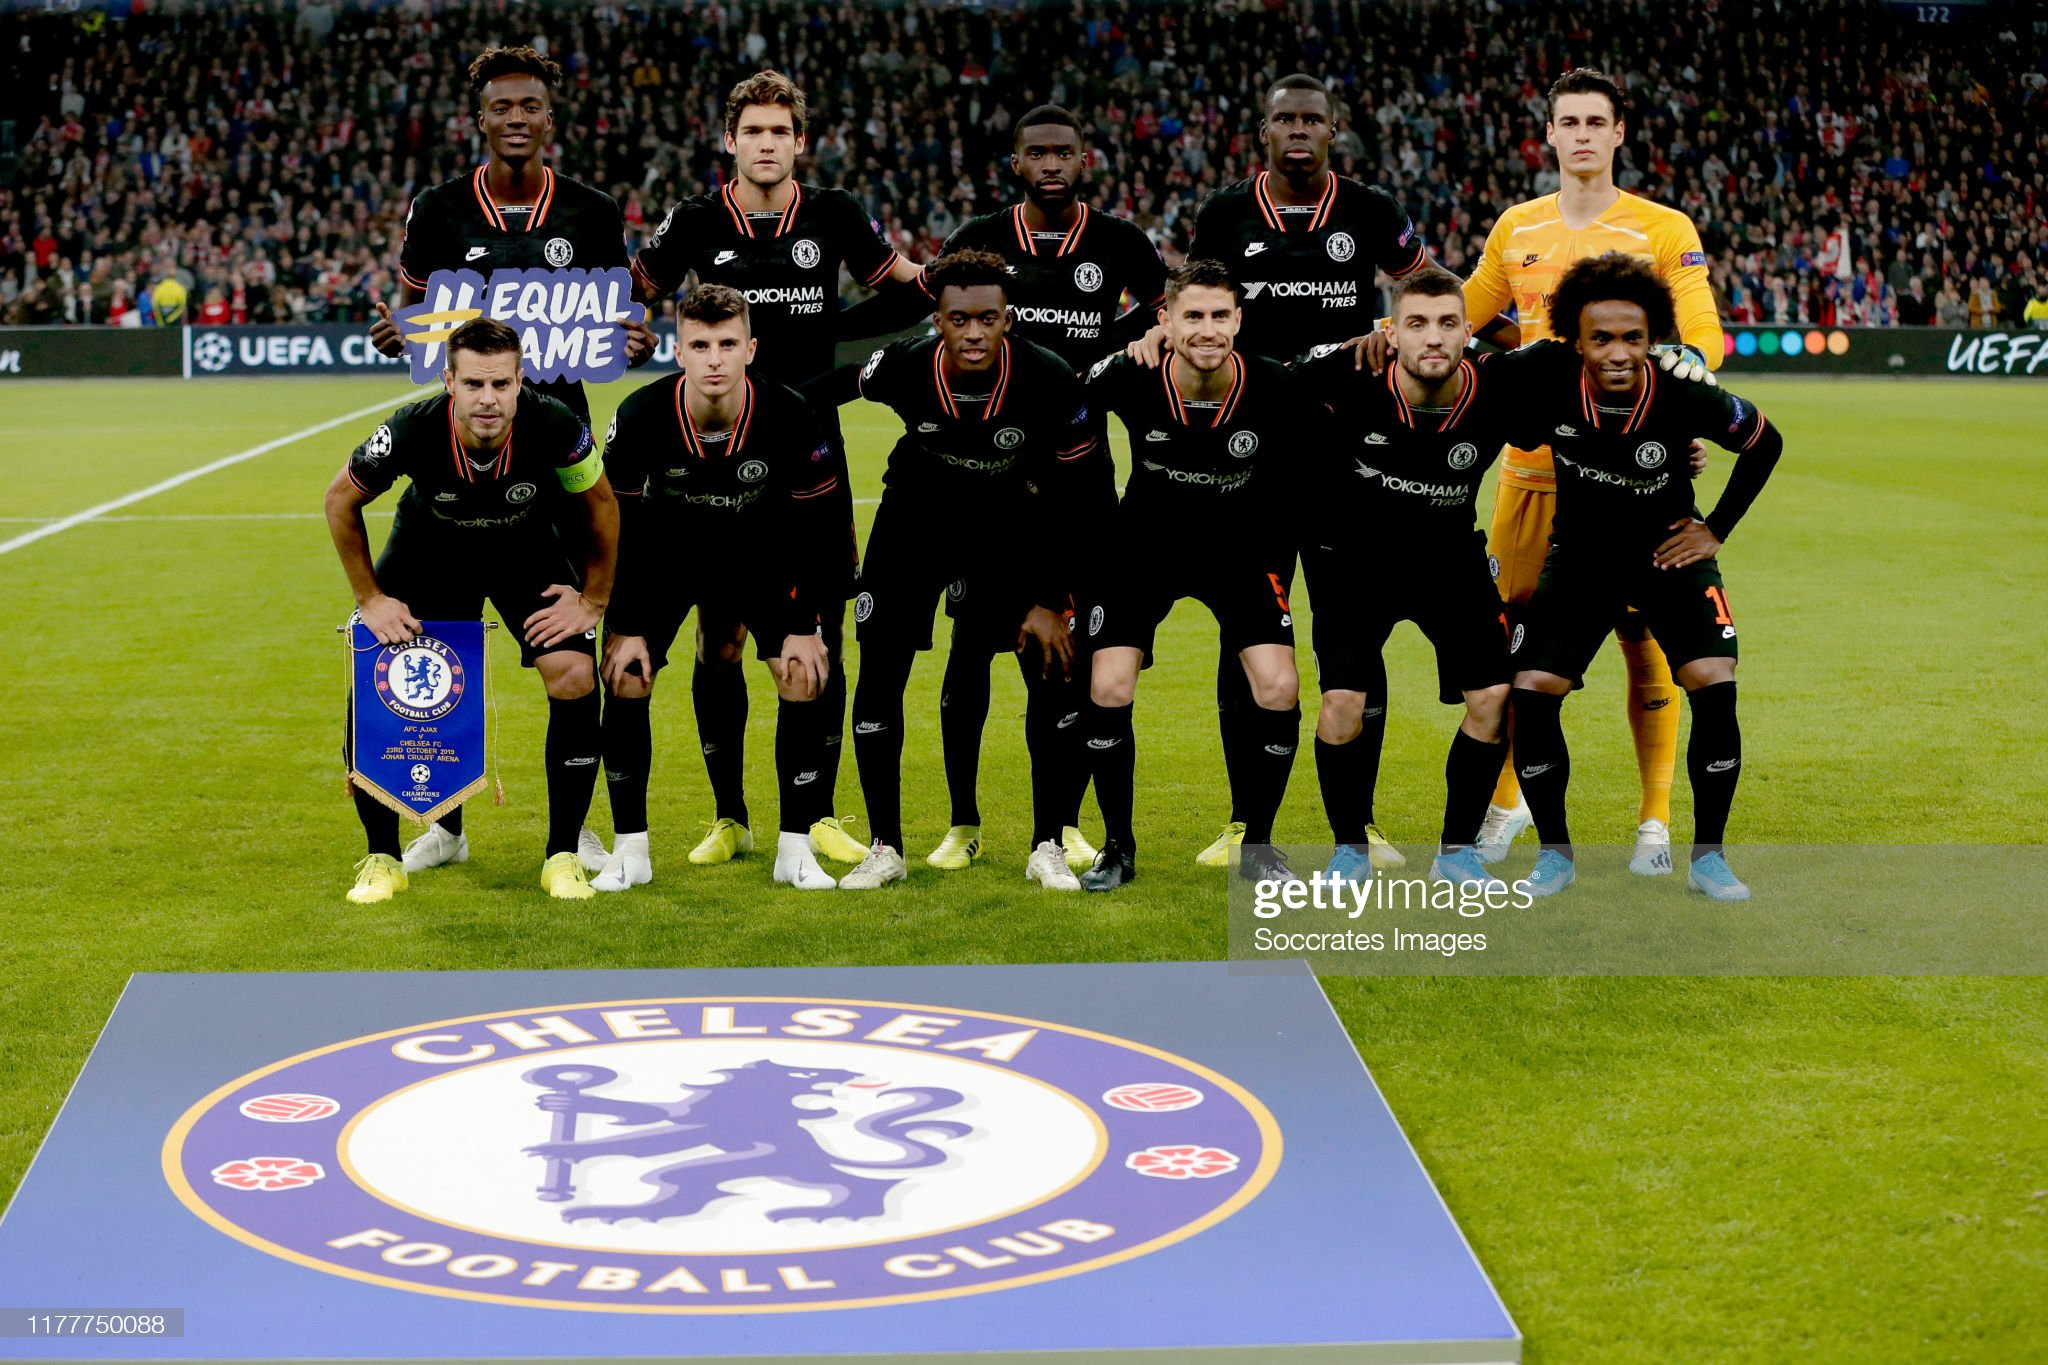 ¿Cuánto mide Tammy Abraham? - Altura - Real height Kepa-arrizabalaga-of-chelsea-fc-marcos-alonso-of-chelsea-fc-jorginho-picture-id1177750088?s=2048x2048